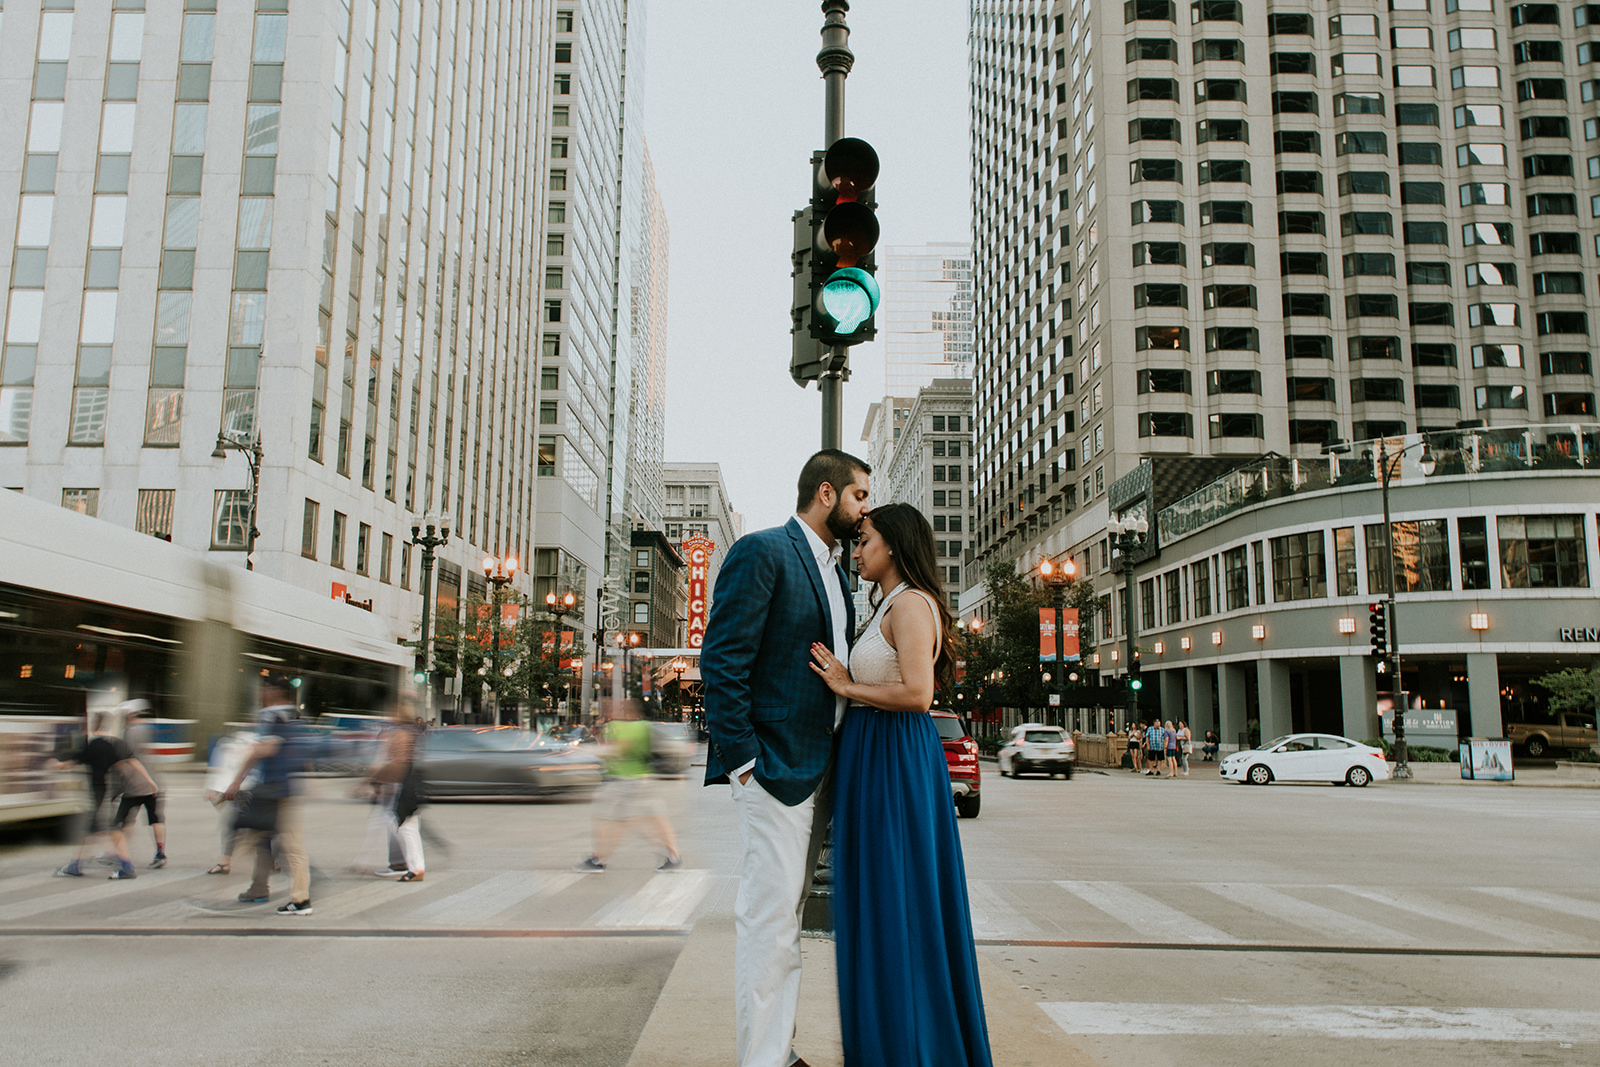 Le Cape Weddings - Chicago Engagement Session - Rina and Manan -59.jpg